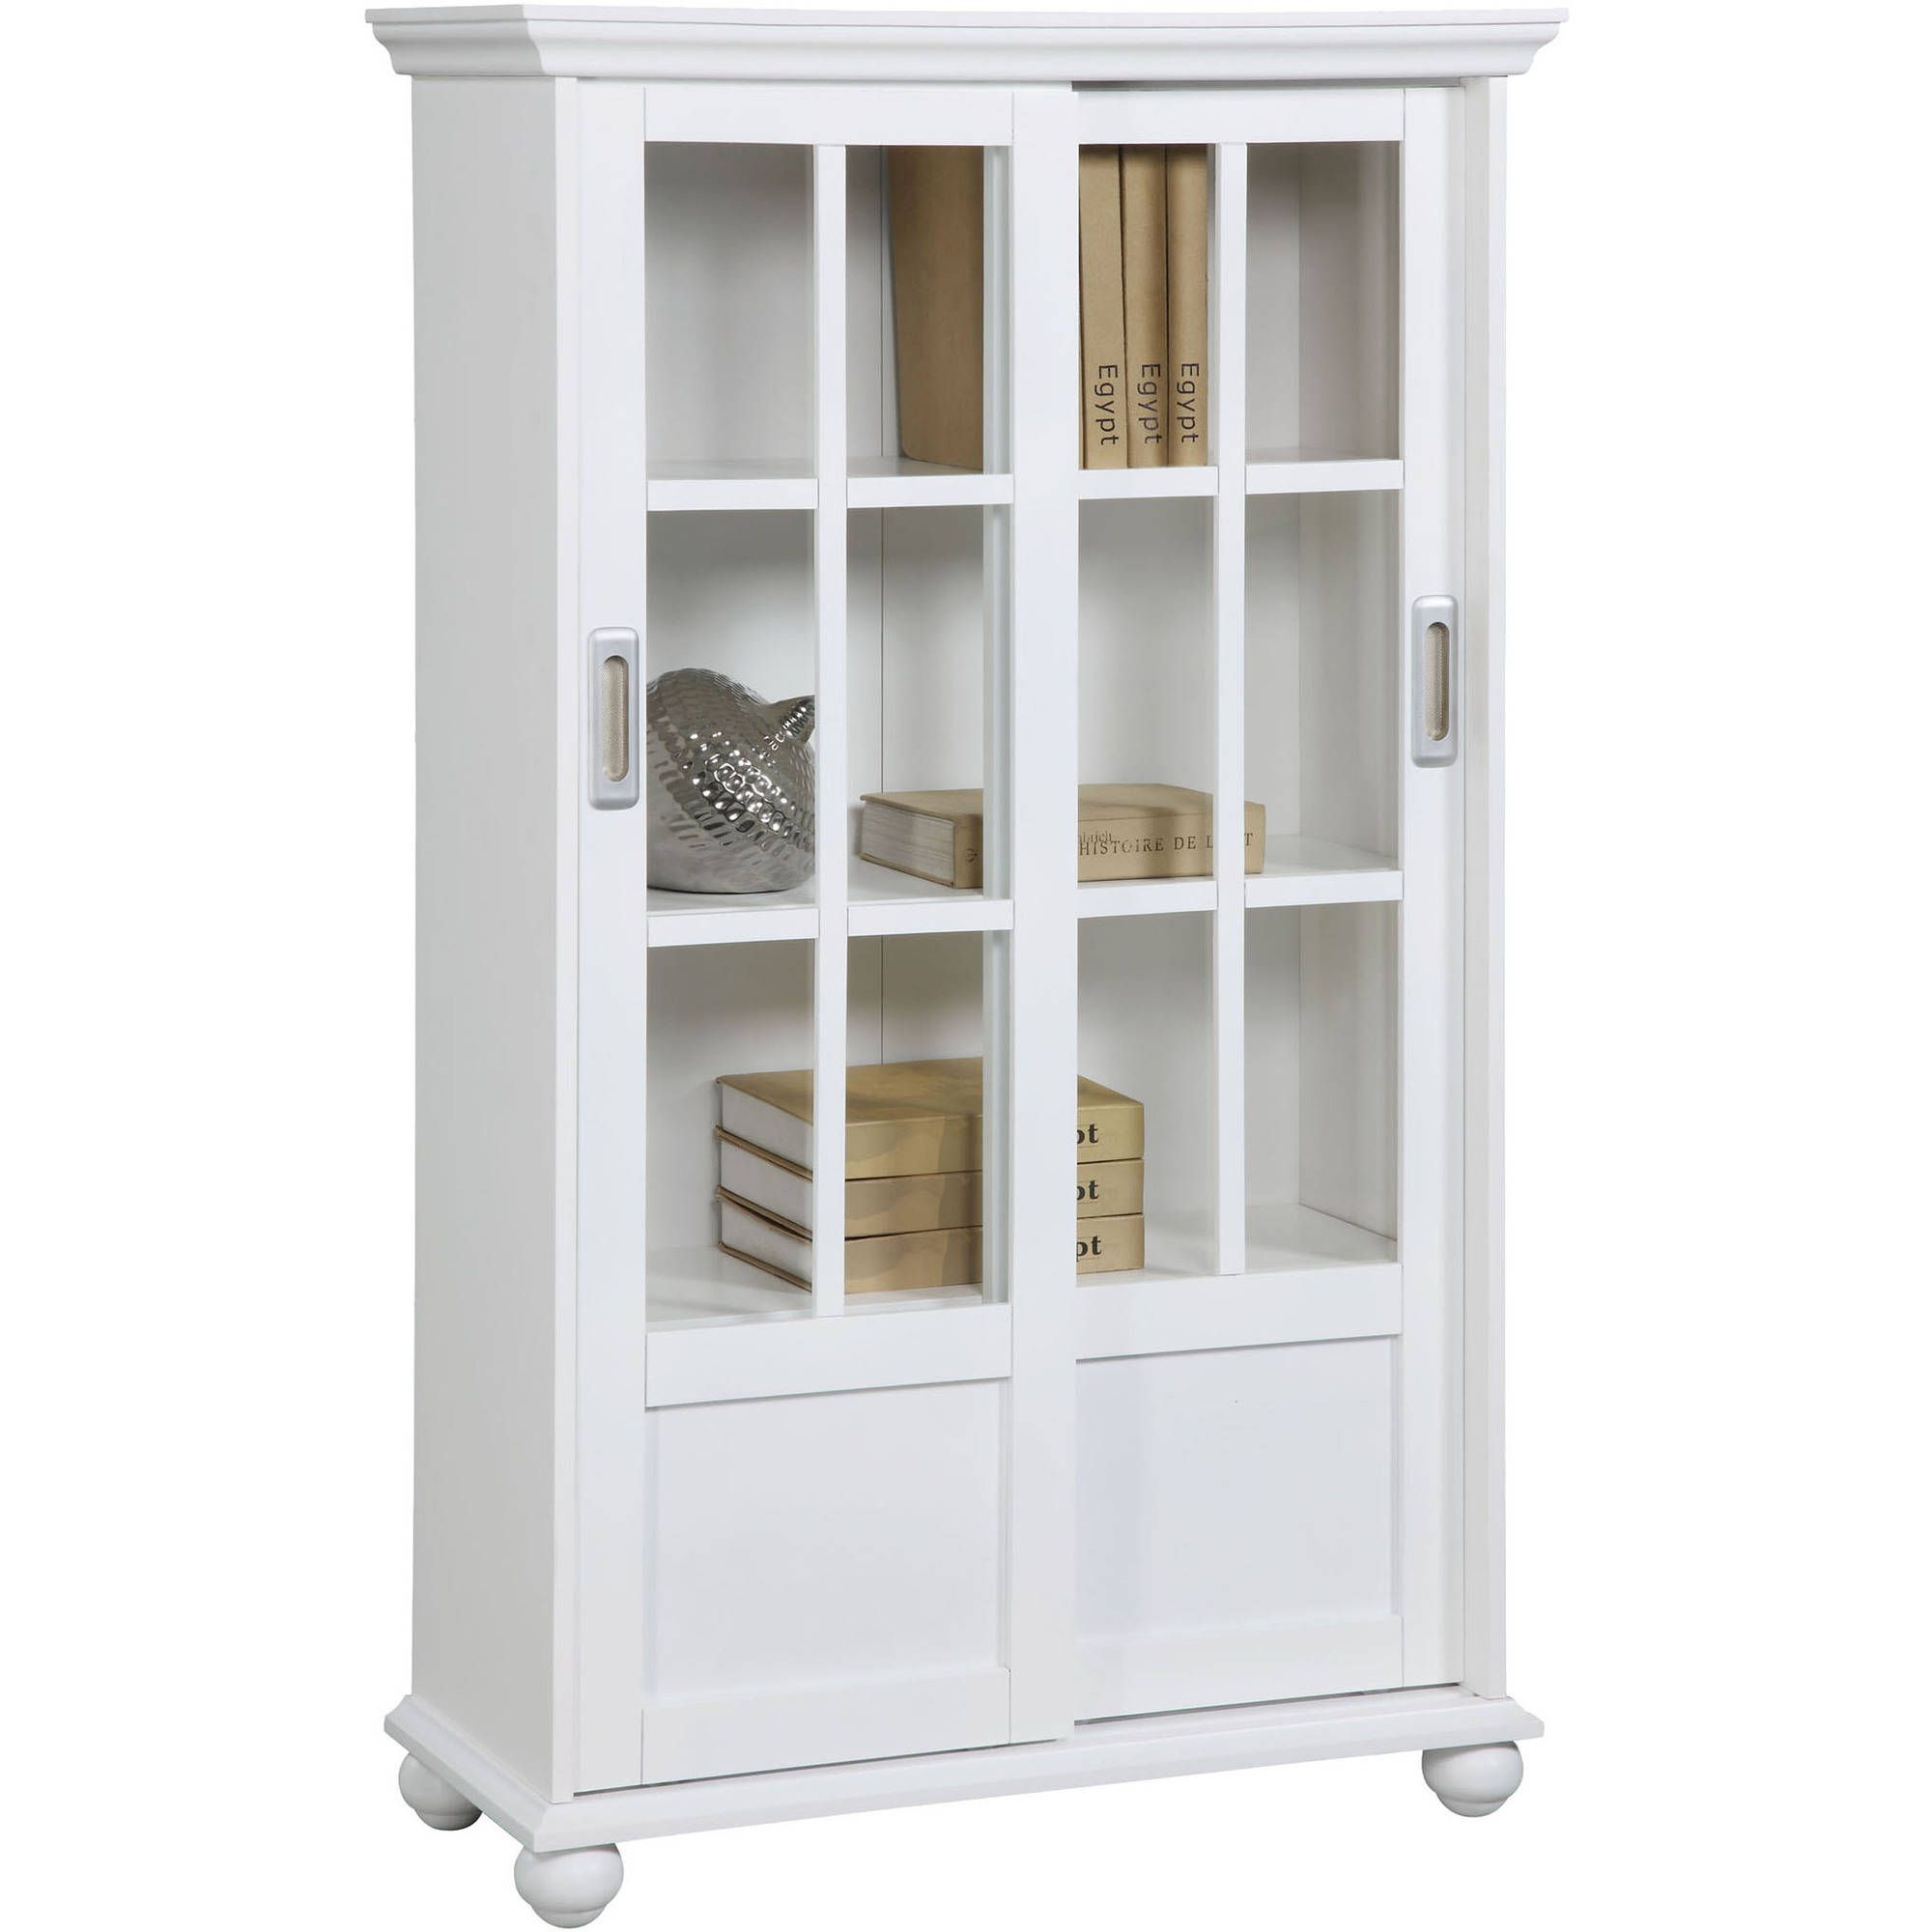 Arron Lane 4 Shelf Sliding Glass Door Bookcase Multiple Colors